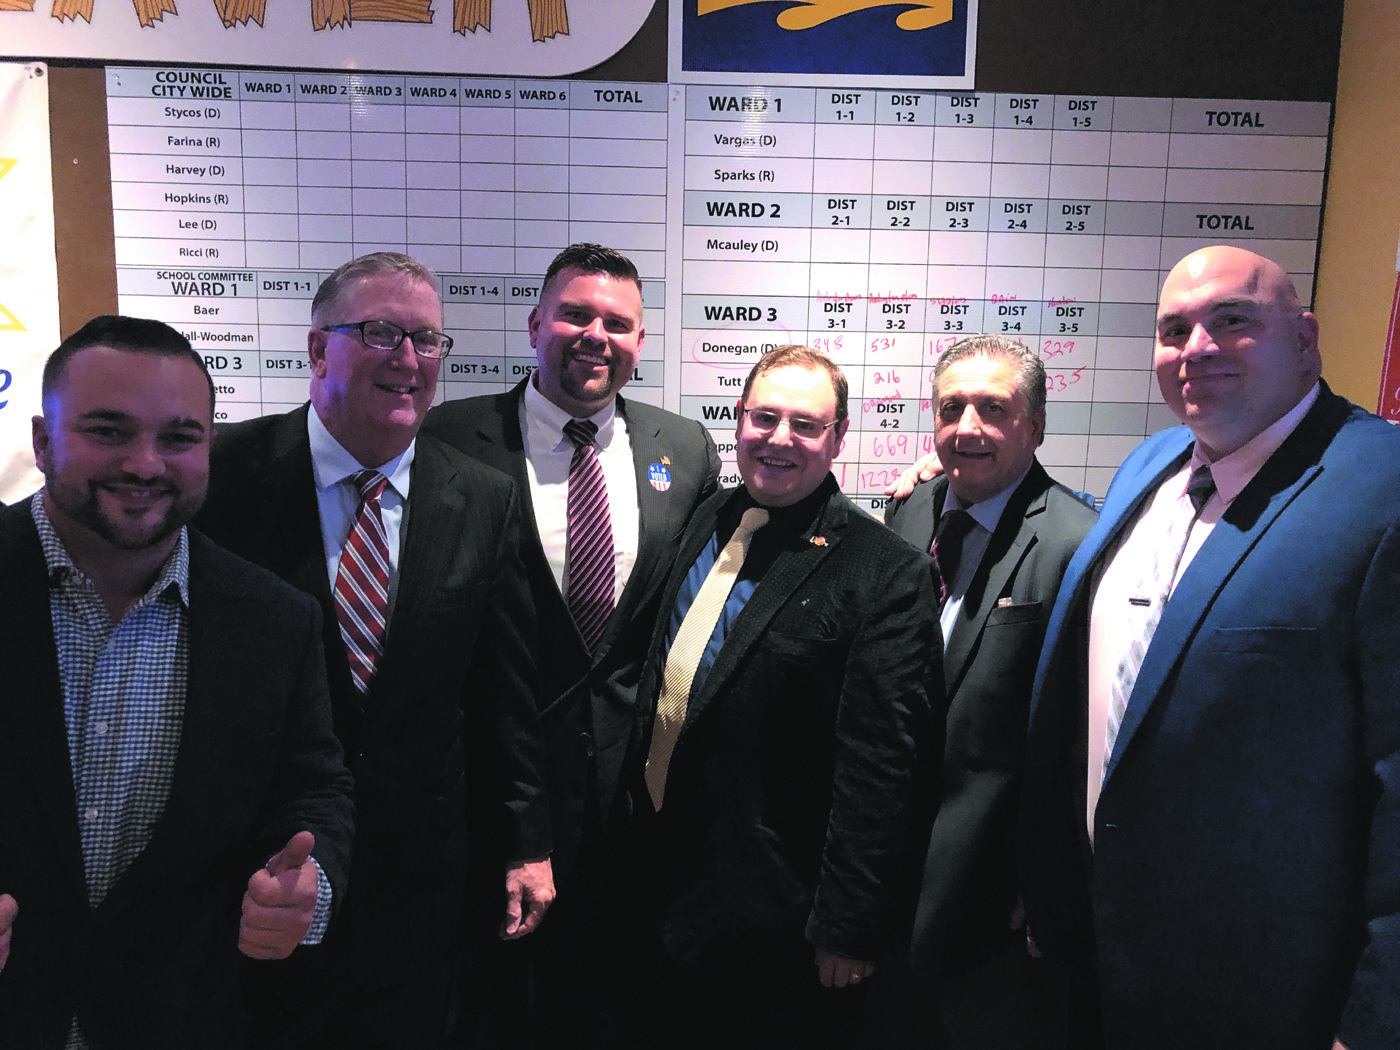 KEEPING THE MAJORITY: Councilmen Ed Brady, Ken Hopkins, Chris Paplauskas, Republican Chair Chris Buonanno, Councilmen Favicchio and Farina take a moment to celebrate their victory on Tuesday, November 6.